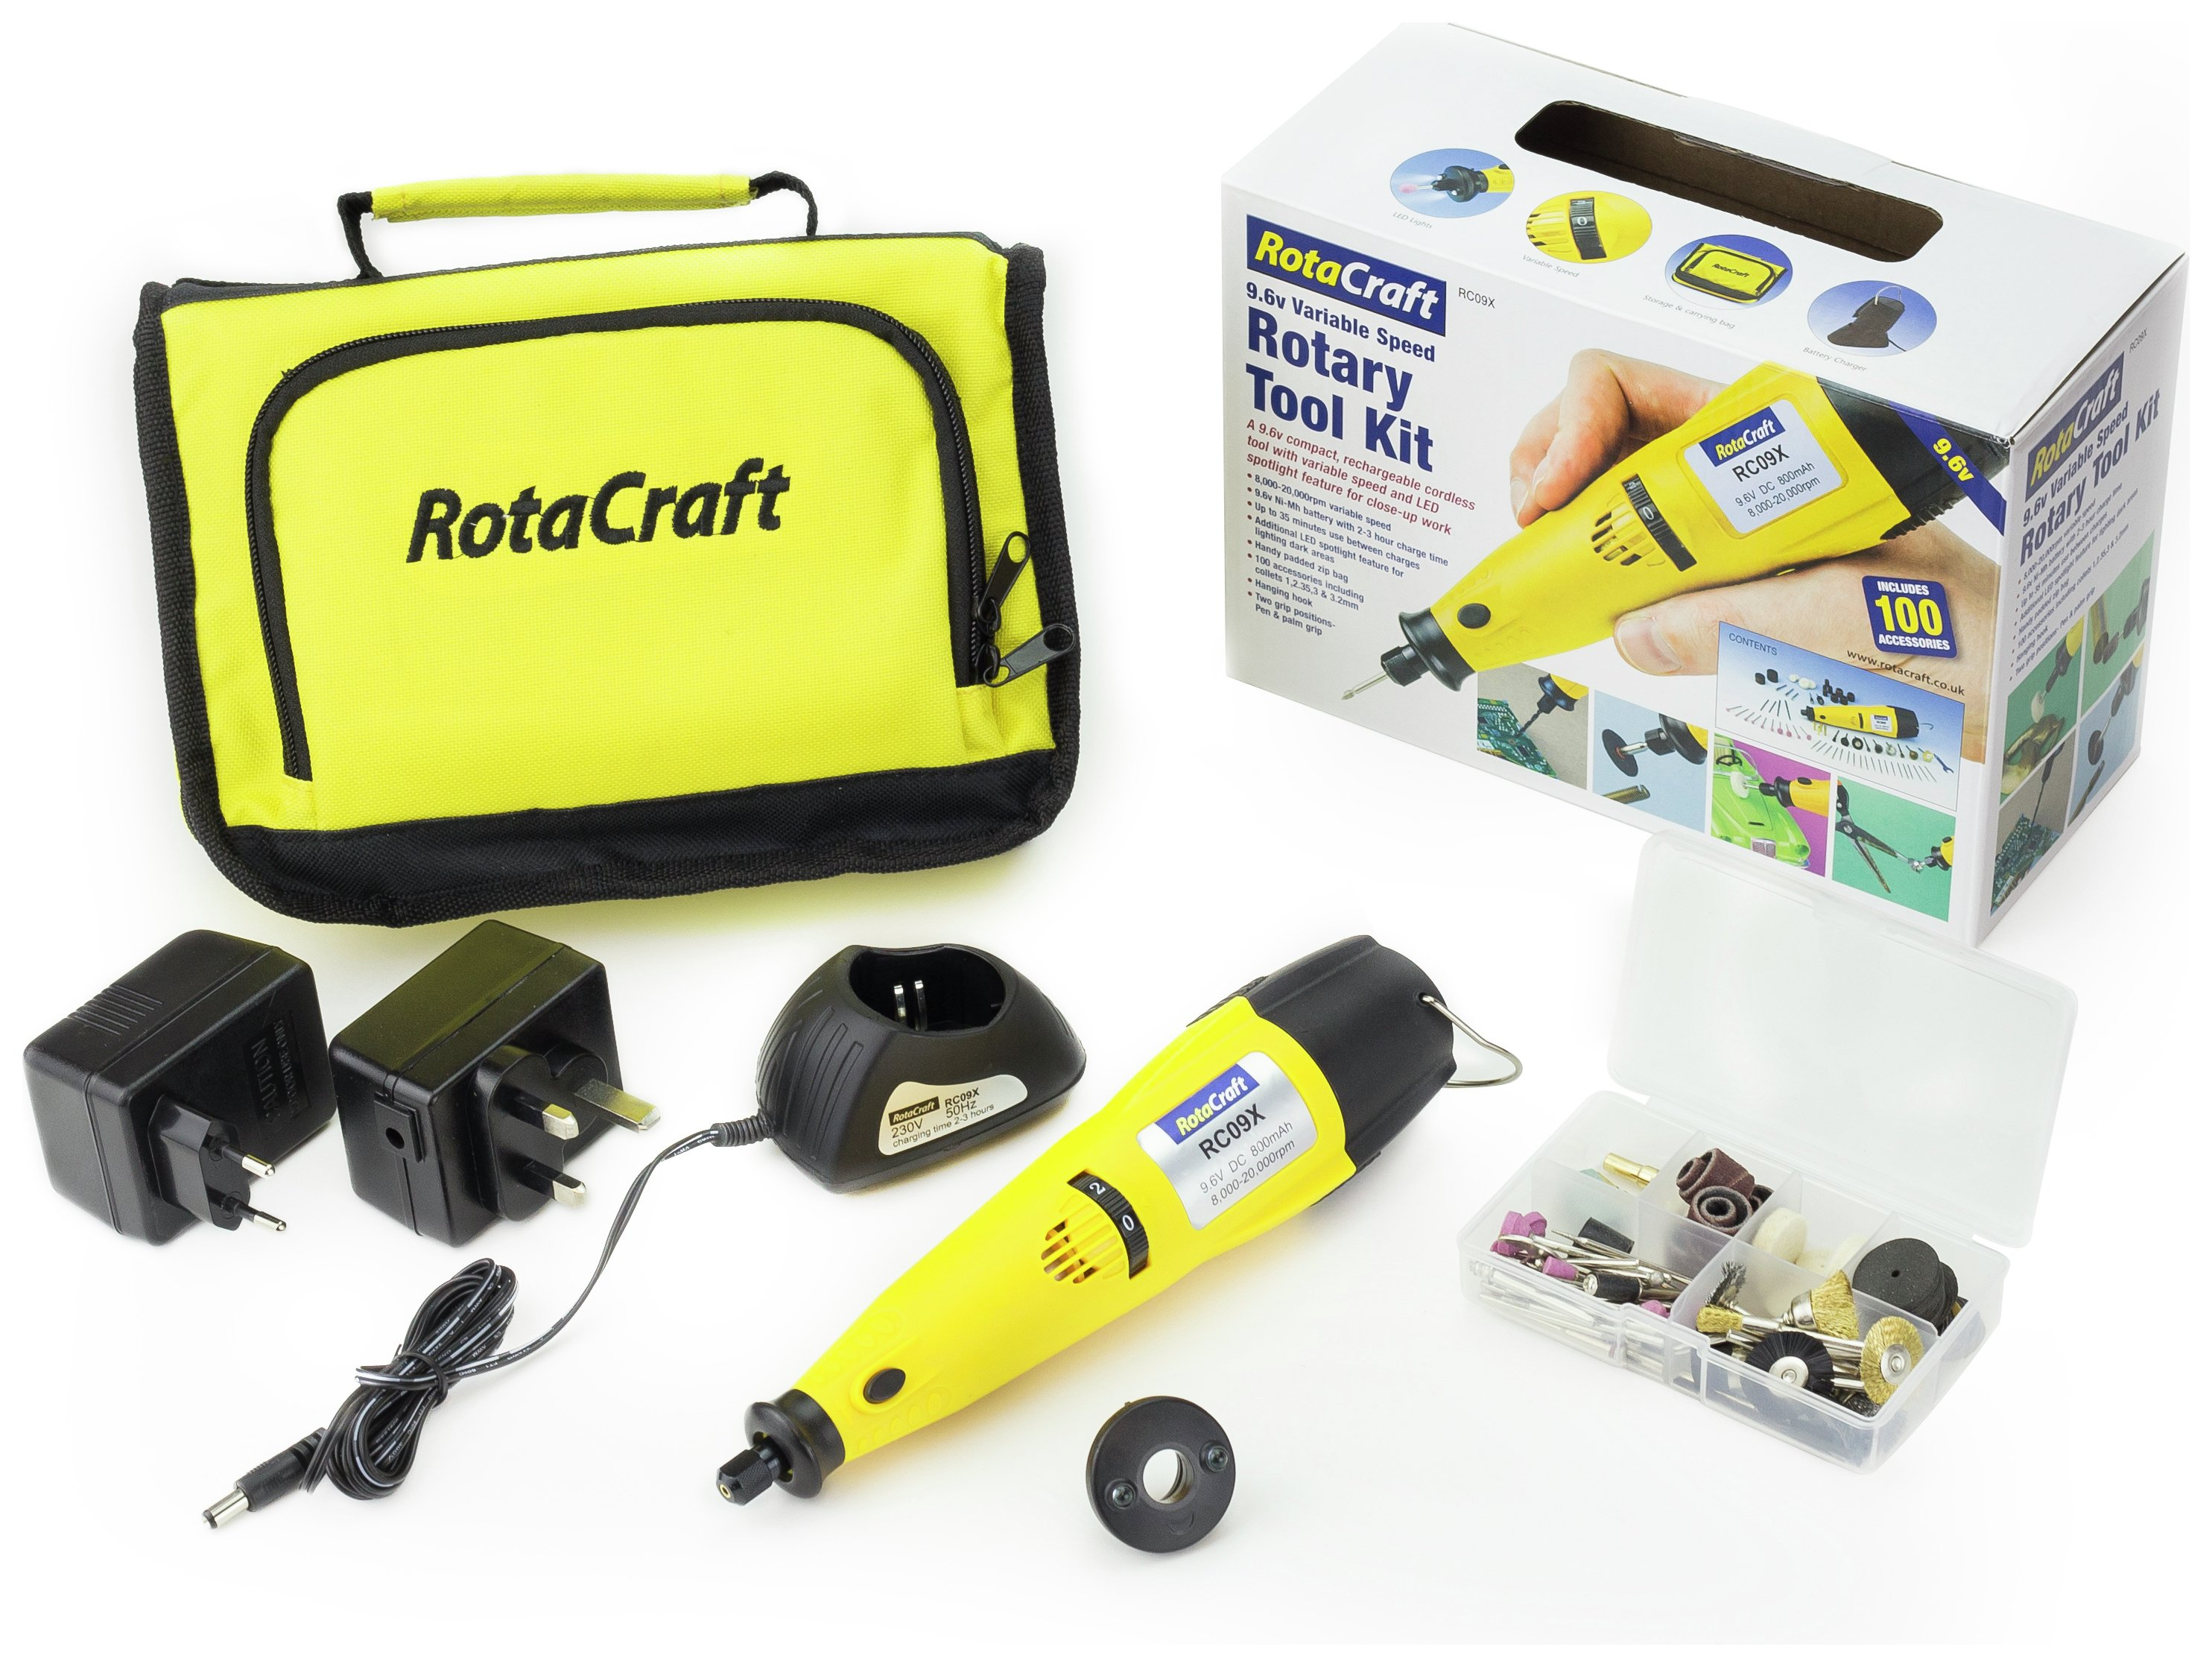 rotacraft-96v-variable-speed-rotary-tool-kit